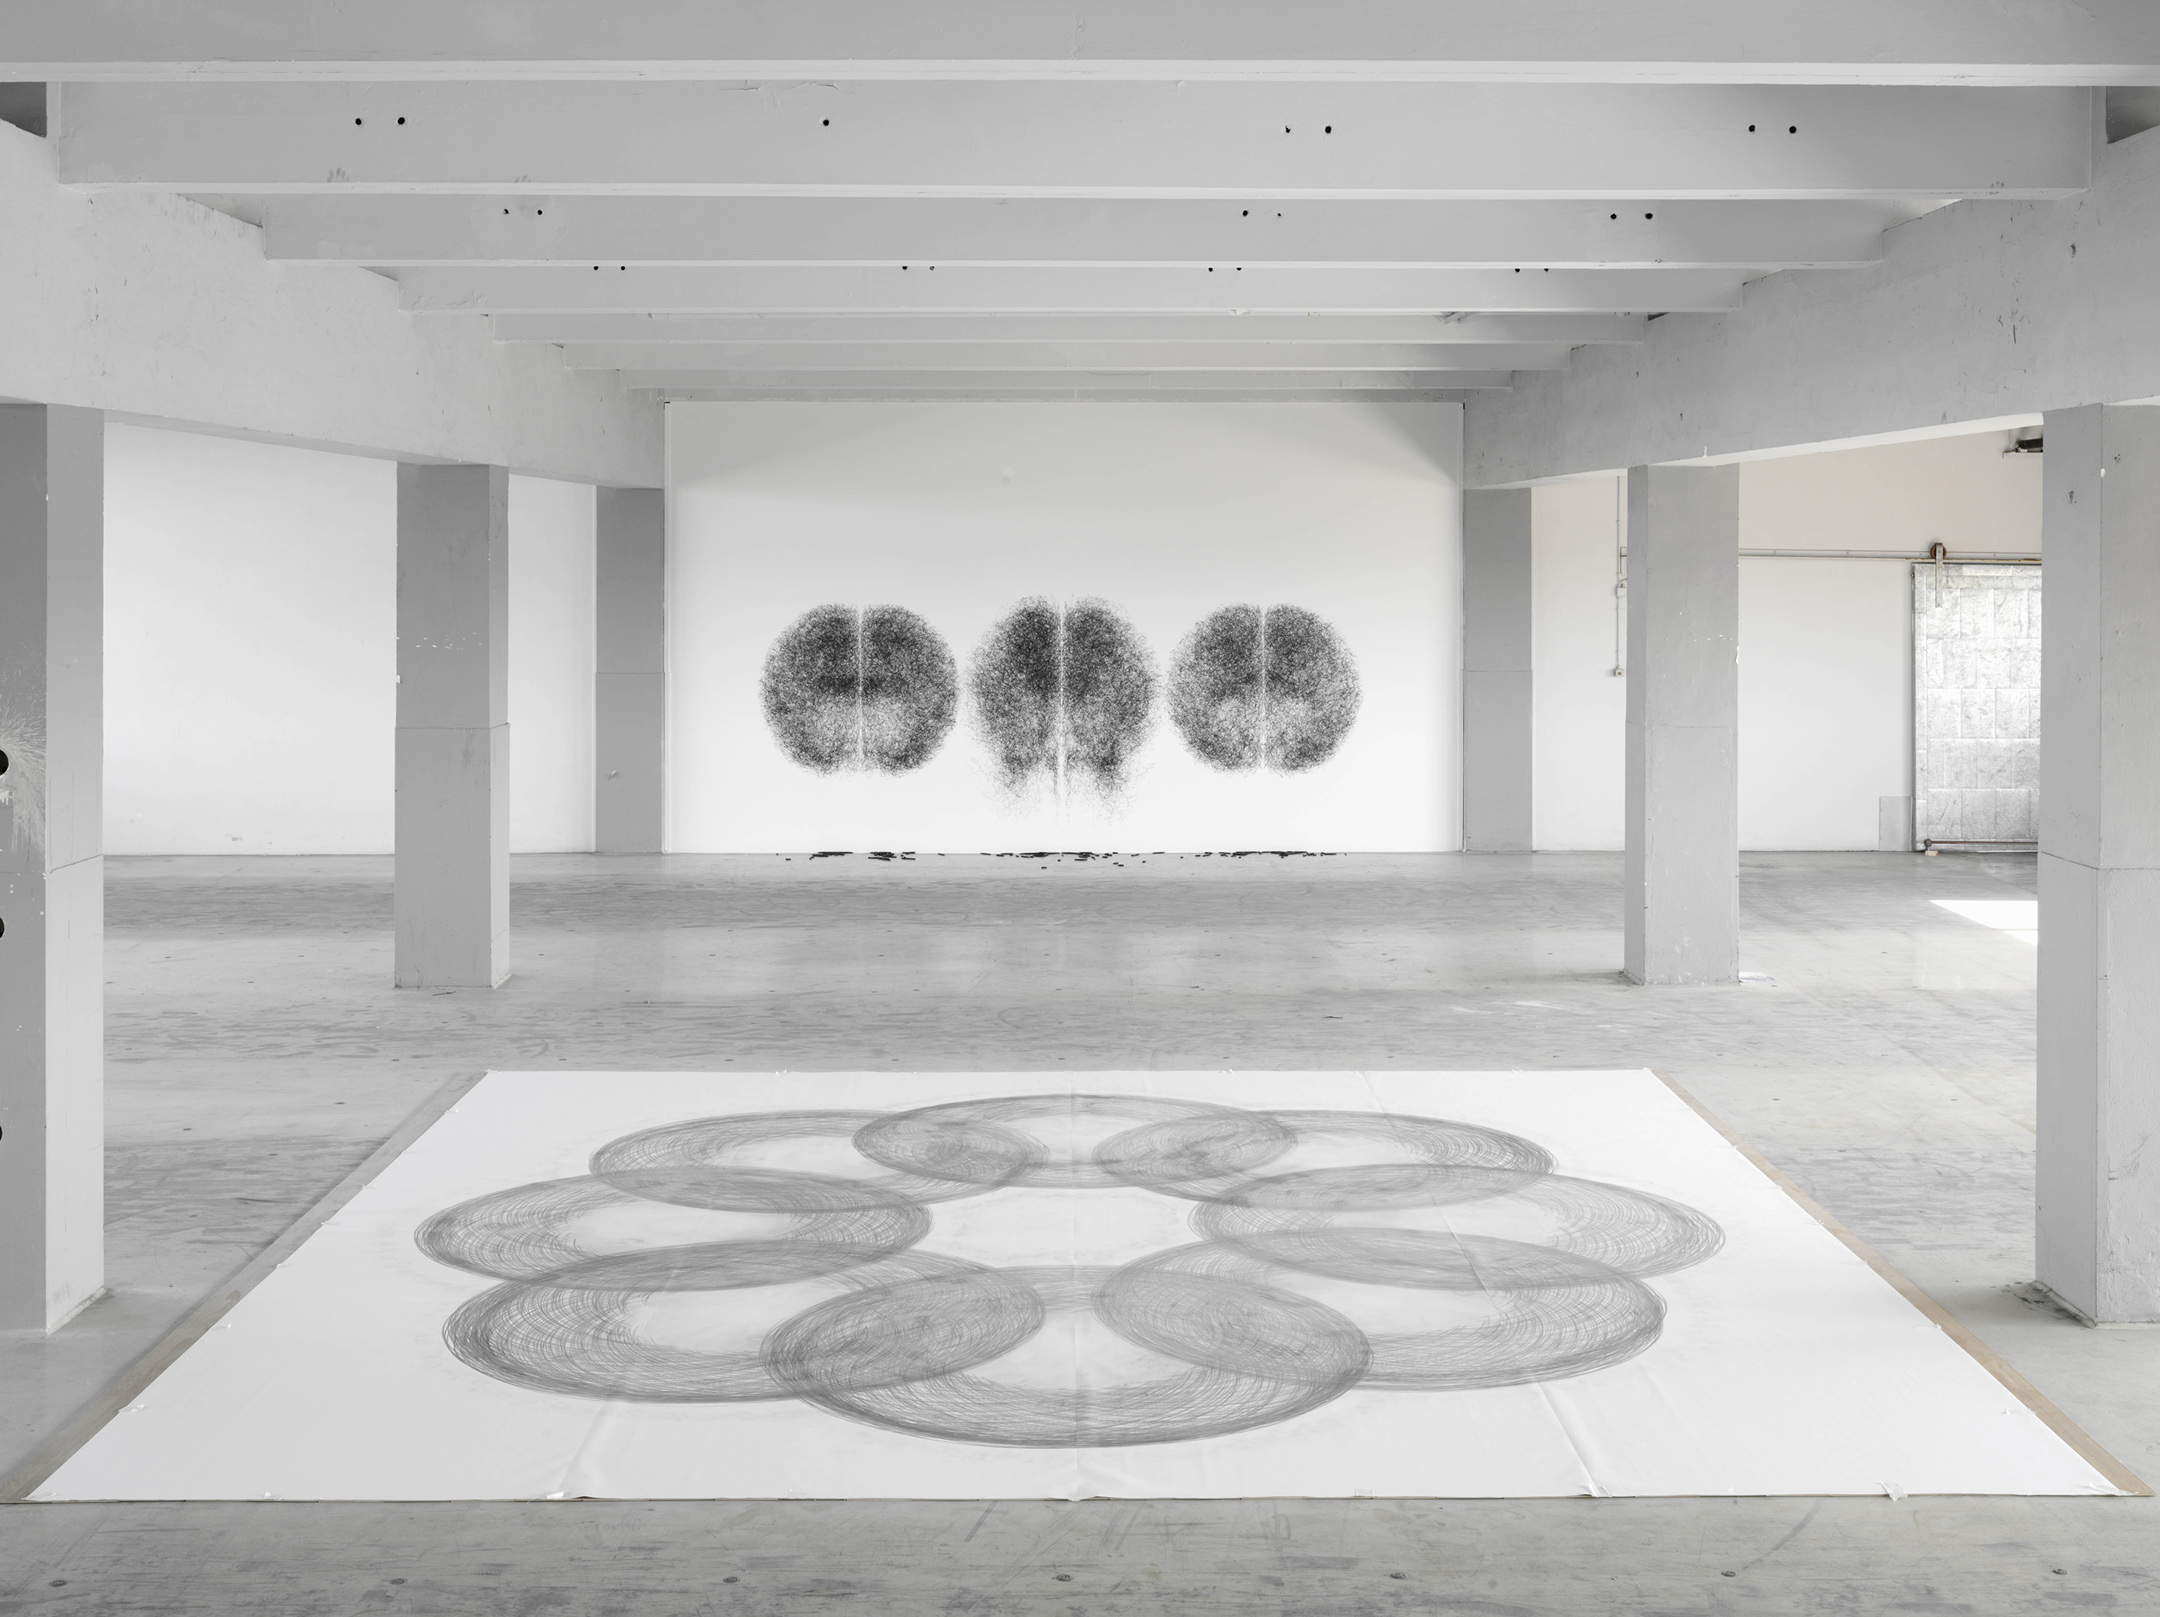 Tony Orrico – Penwald – Conceptual performance art